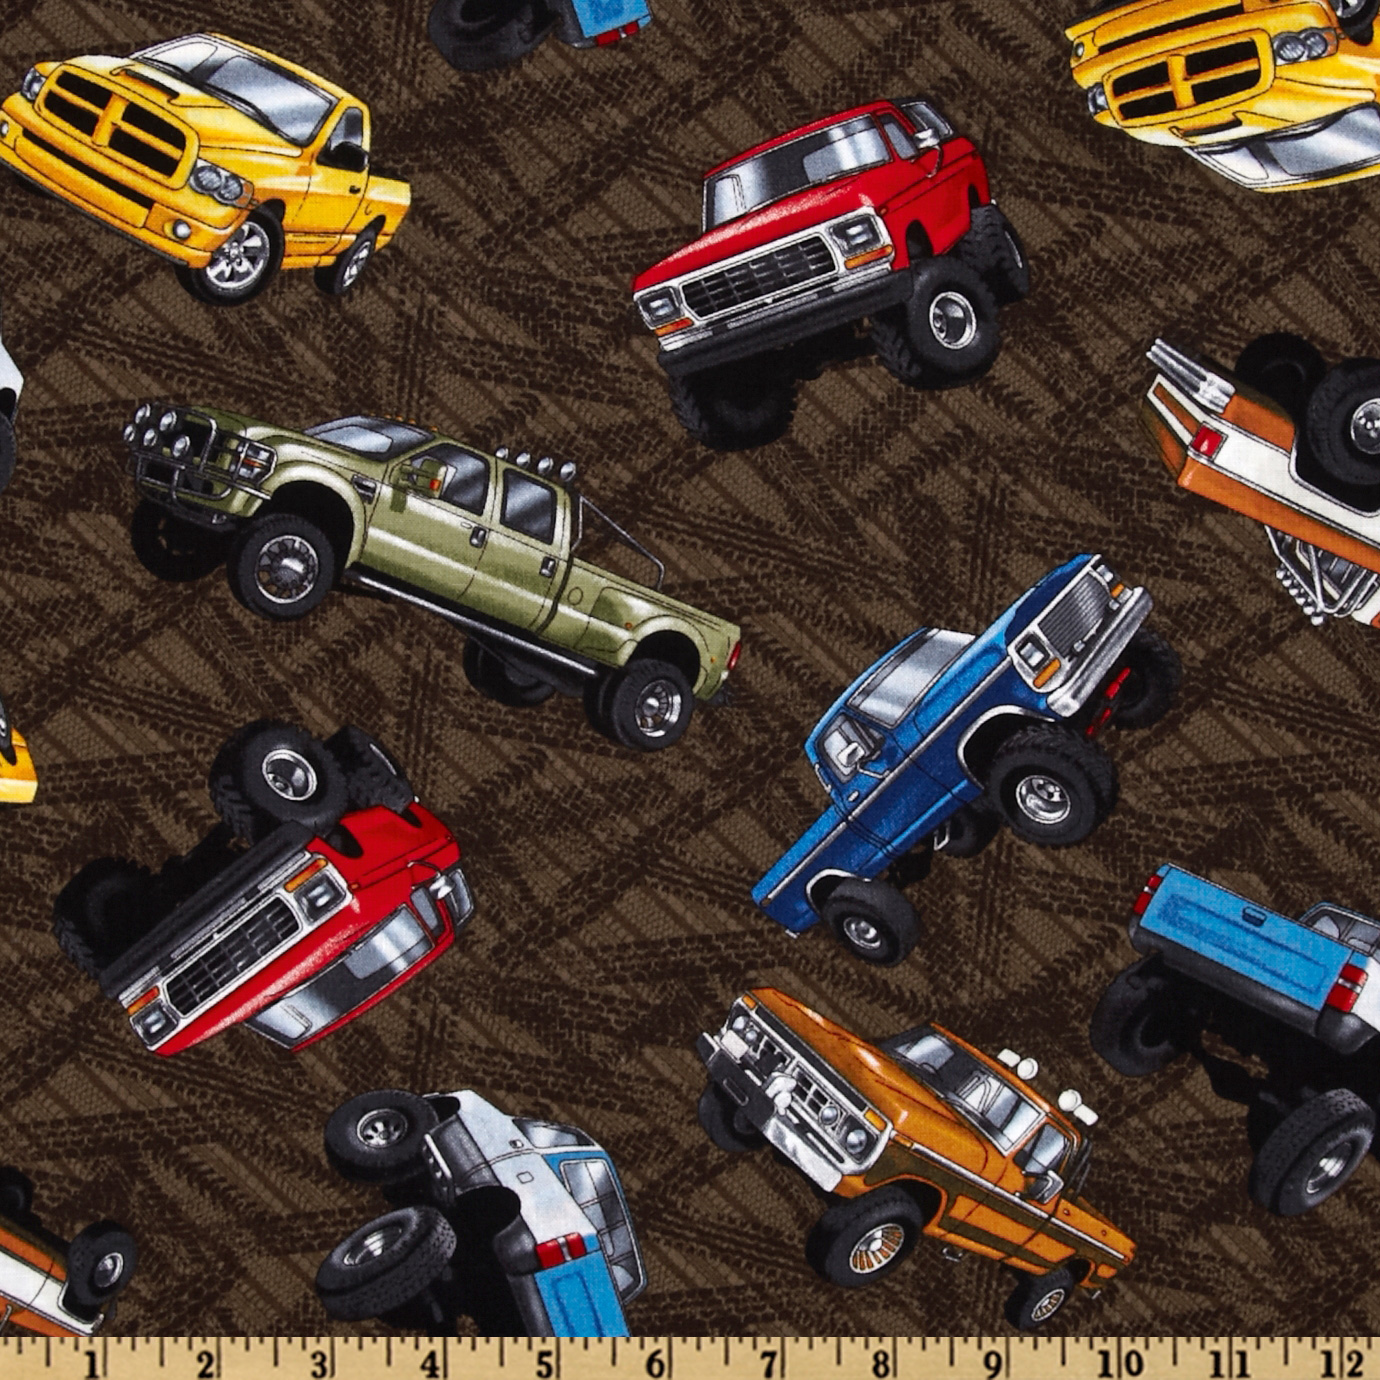 Extreme Sports Trucks Brown Fabric